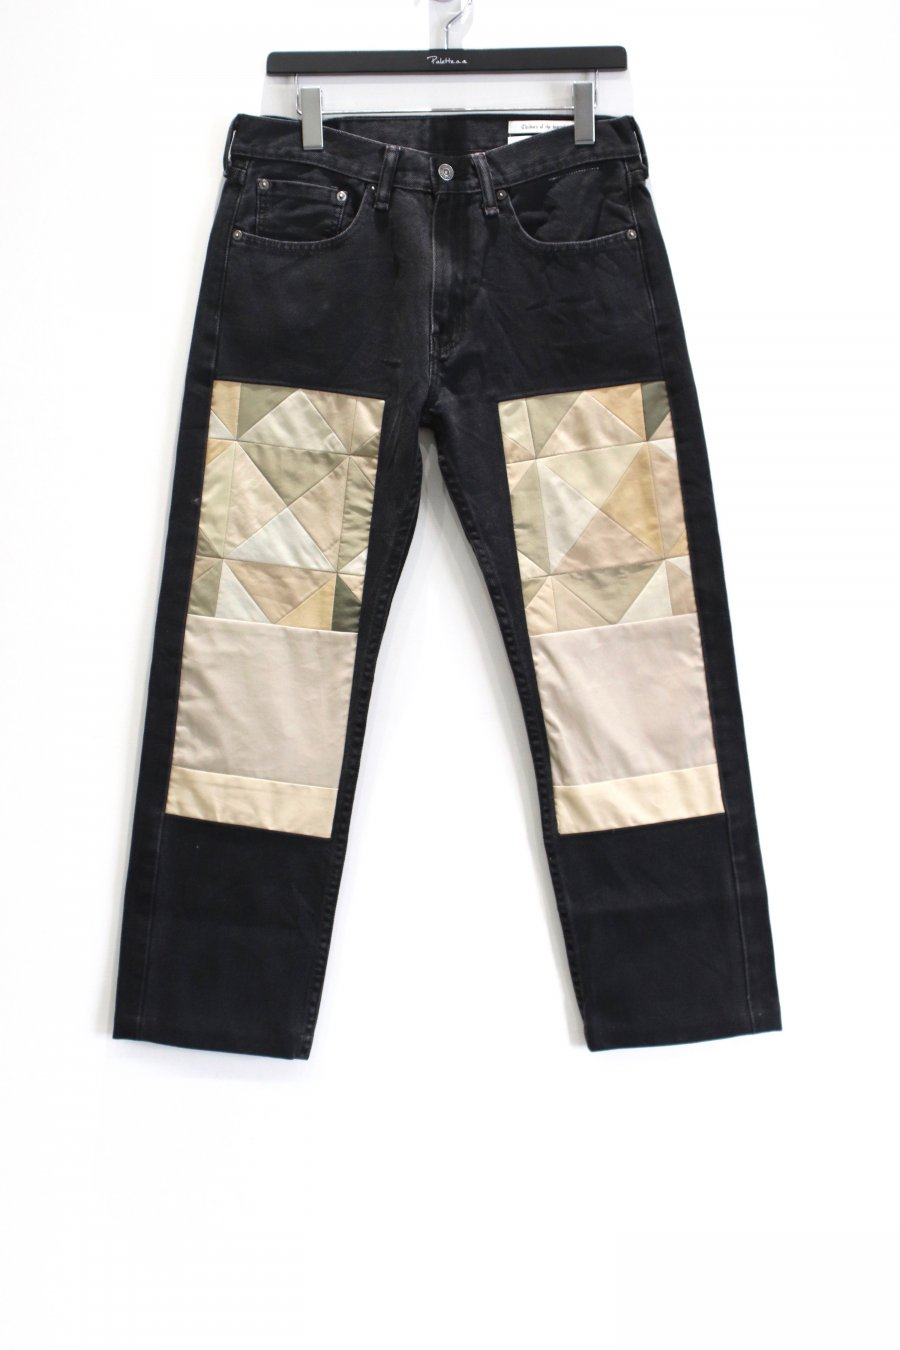 Children of the discordance  NY VINTAGE TRENCH DENIM 21aw-1<img class='new_mark_img2' src='https://img.shop-pro.jp/img/new/icons15.gif' style='border:none;display:inline;margin:0px;padding:0px;width:auto;' />